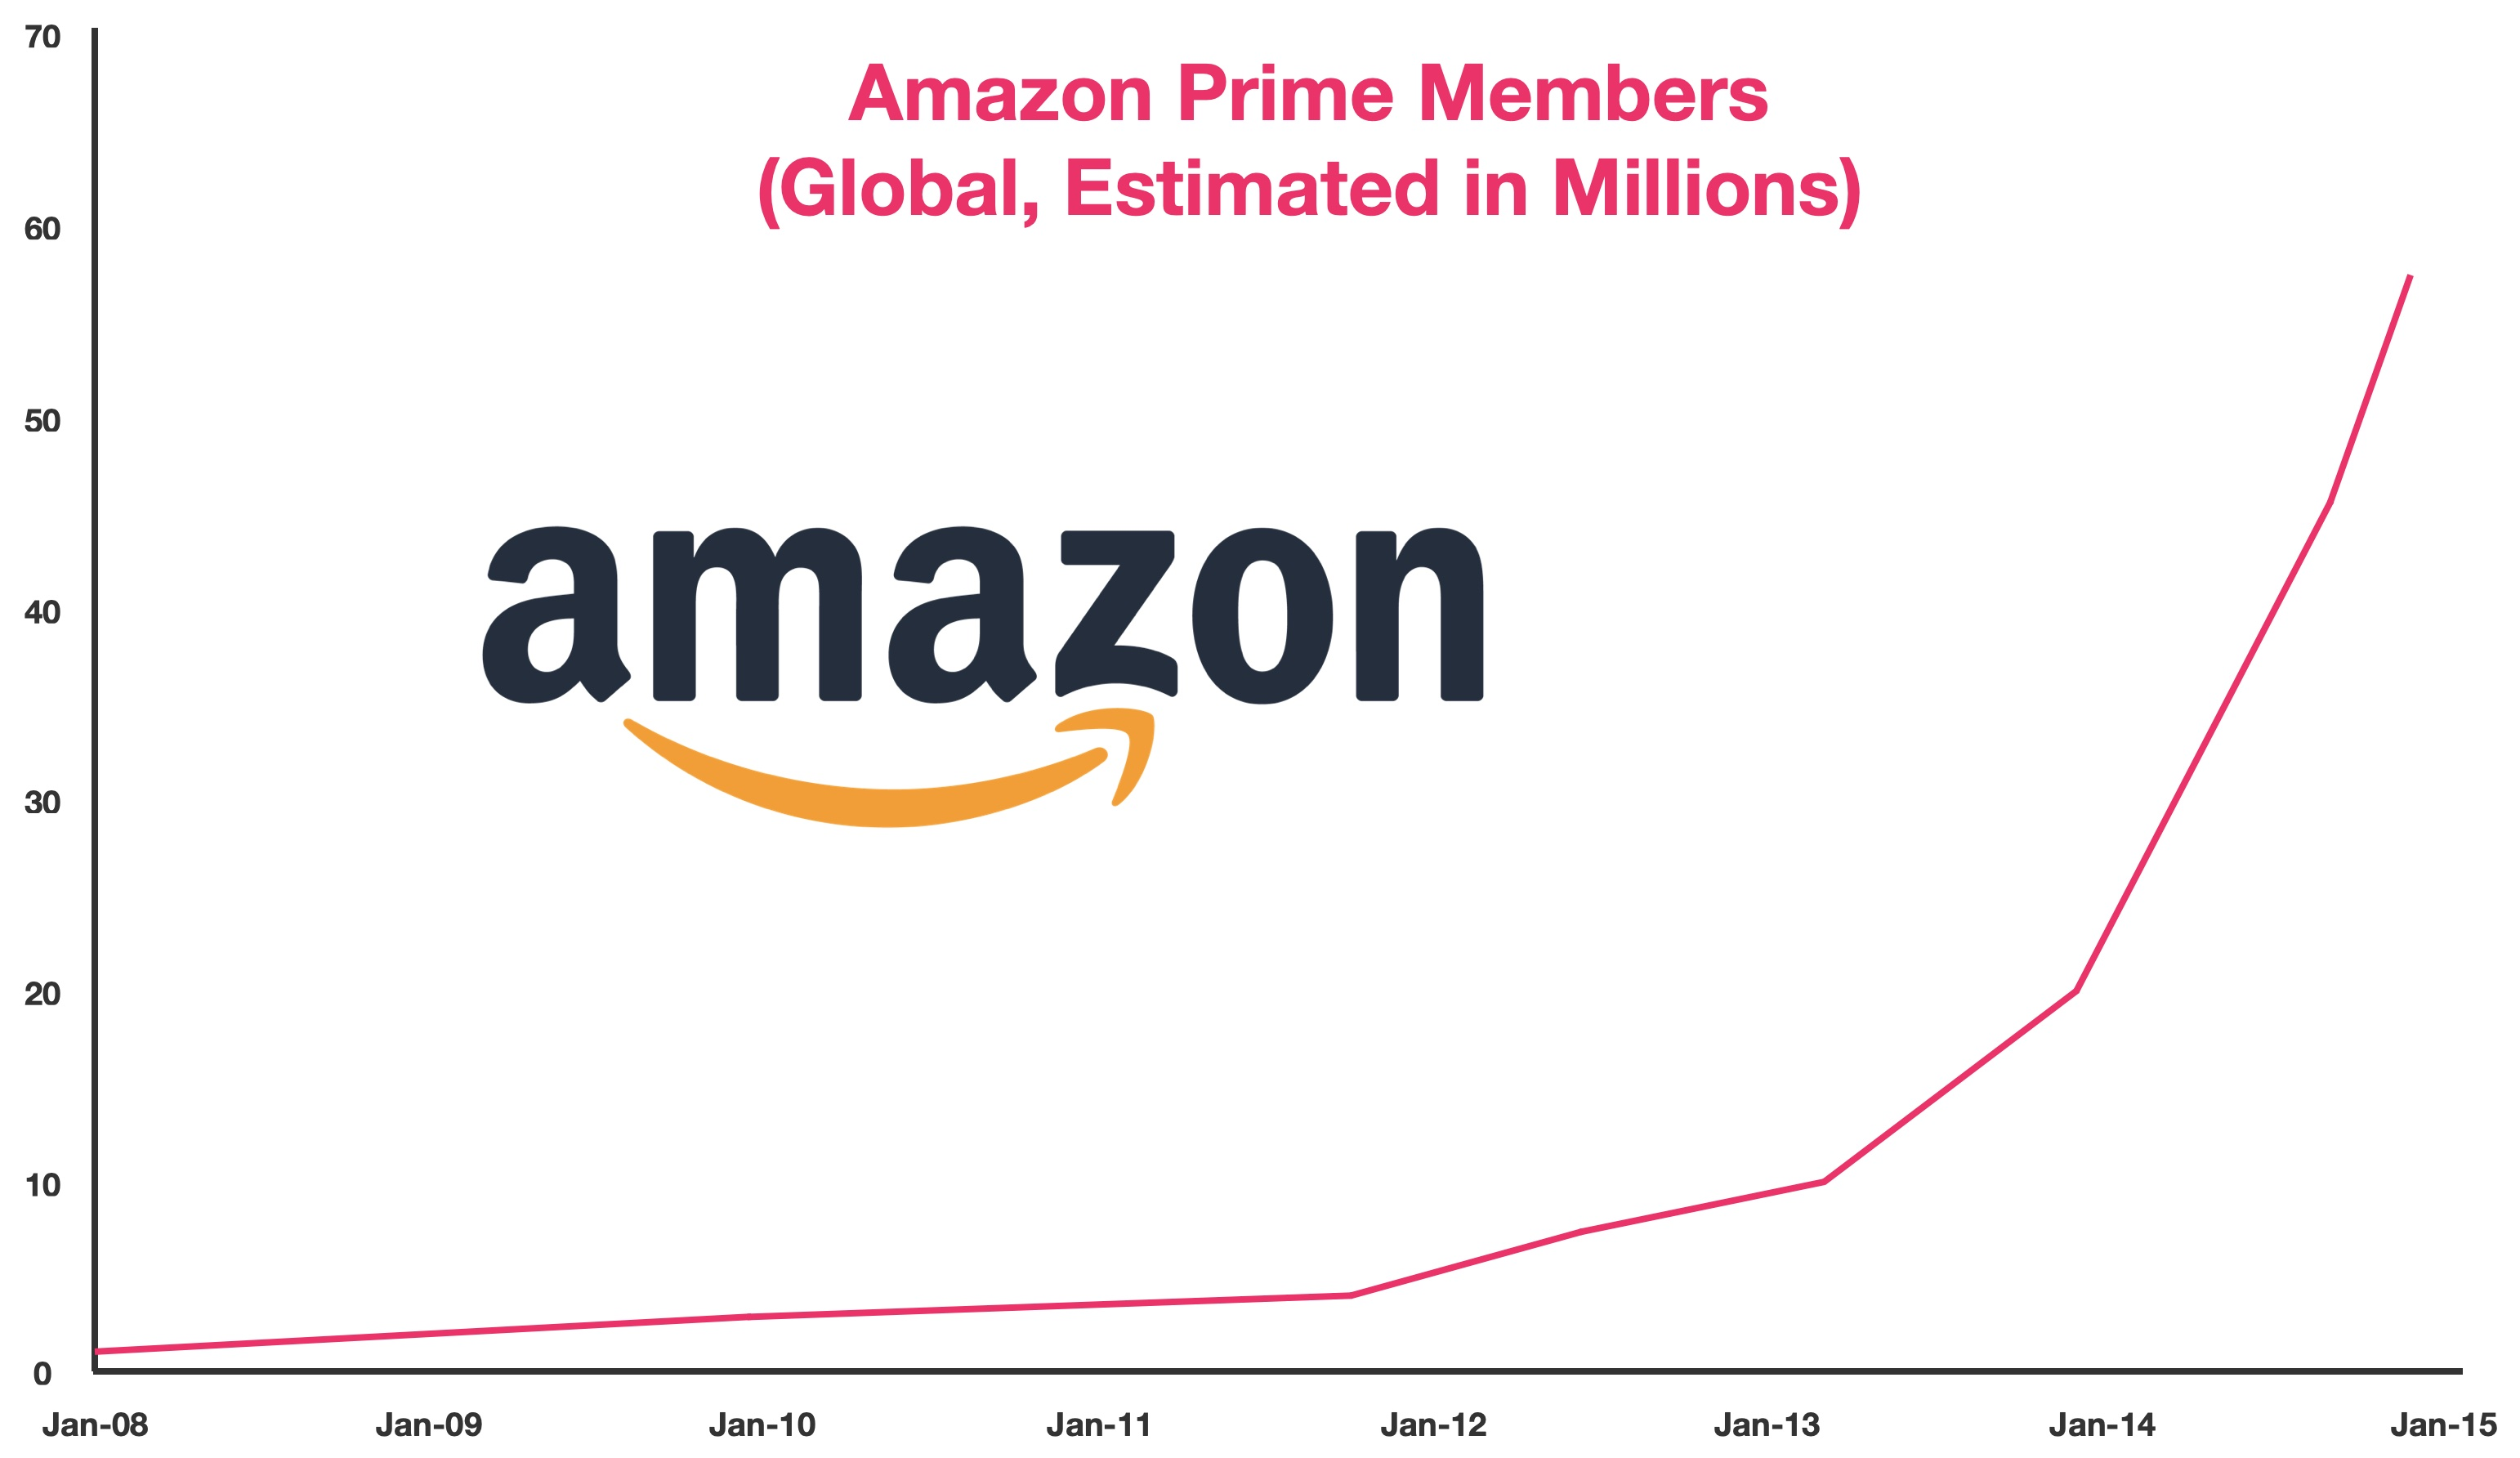 A graph demonstrating exponential membership growth in amazon prime between 2008 and 2015.